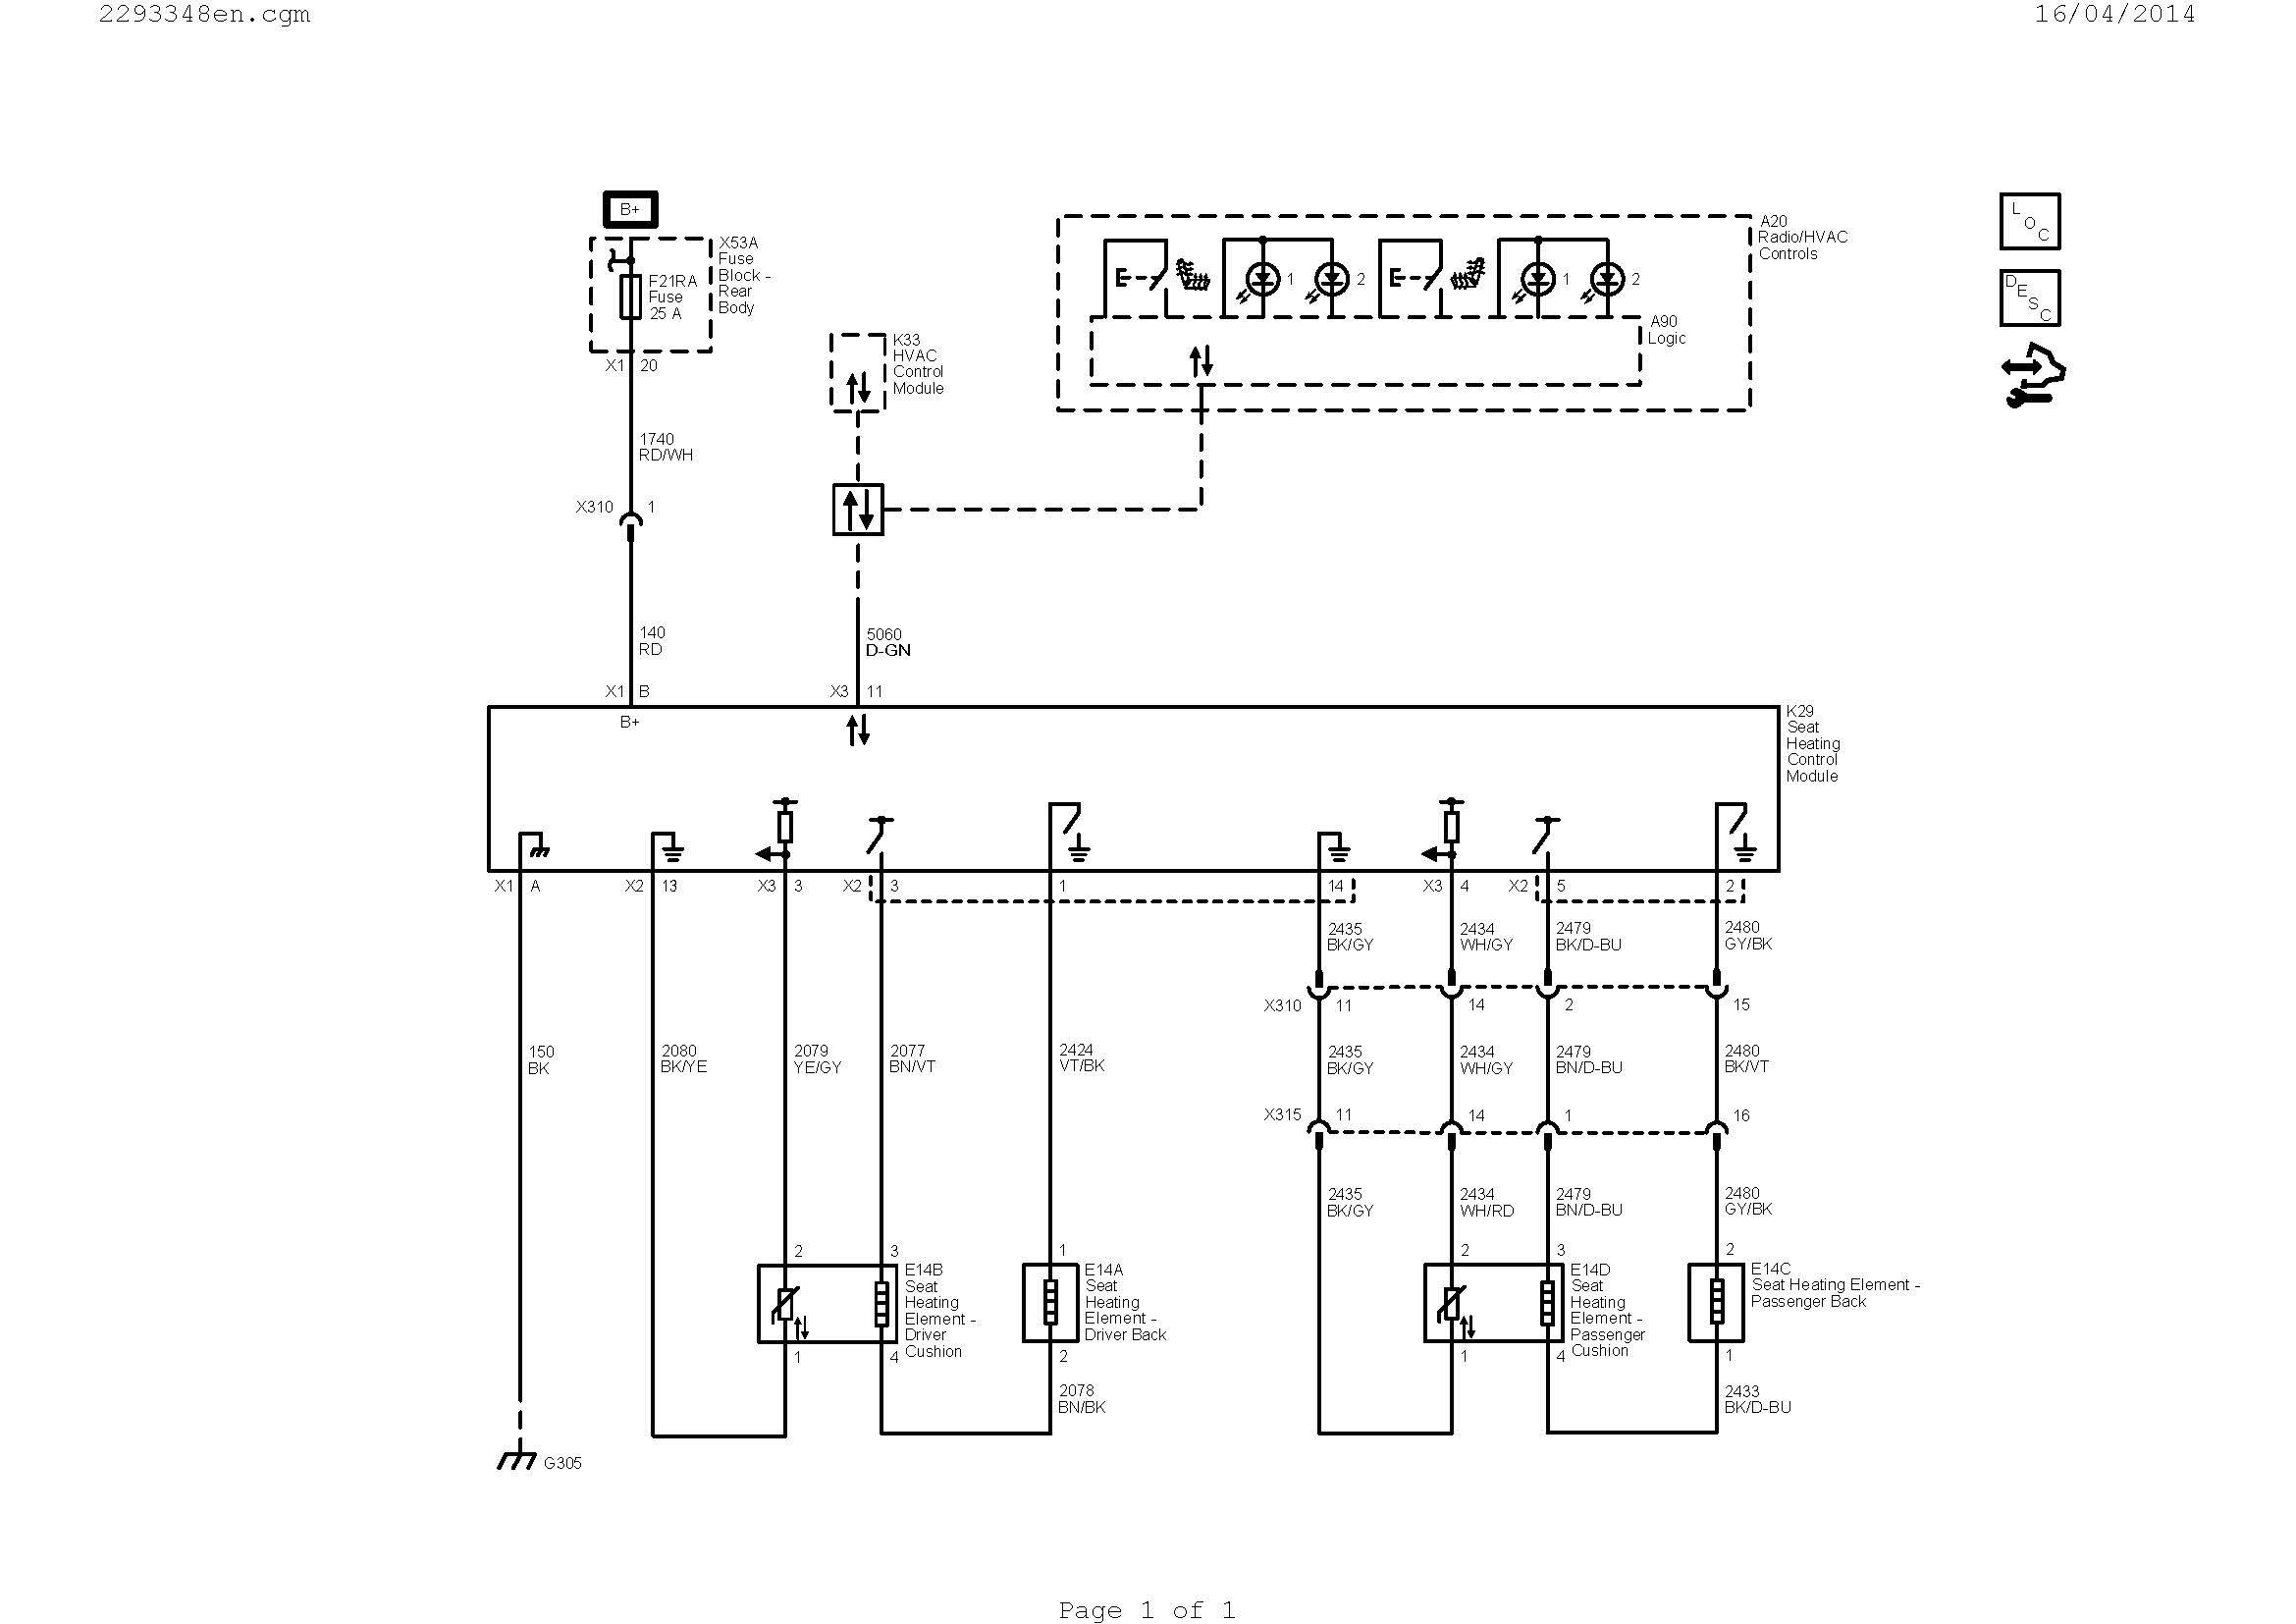 beverage air kf48 1as wiring diagram Collection-7 wire thermostat wiring diagram Download Wiring A Ac Thermostat Diagram New Wiring Diagram Ac 6-r